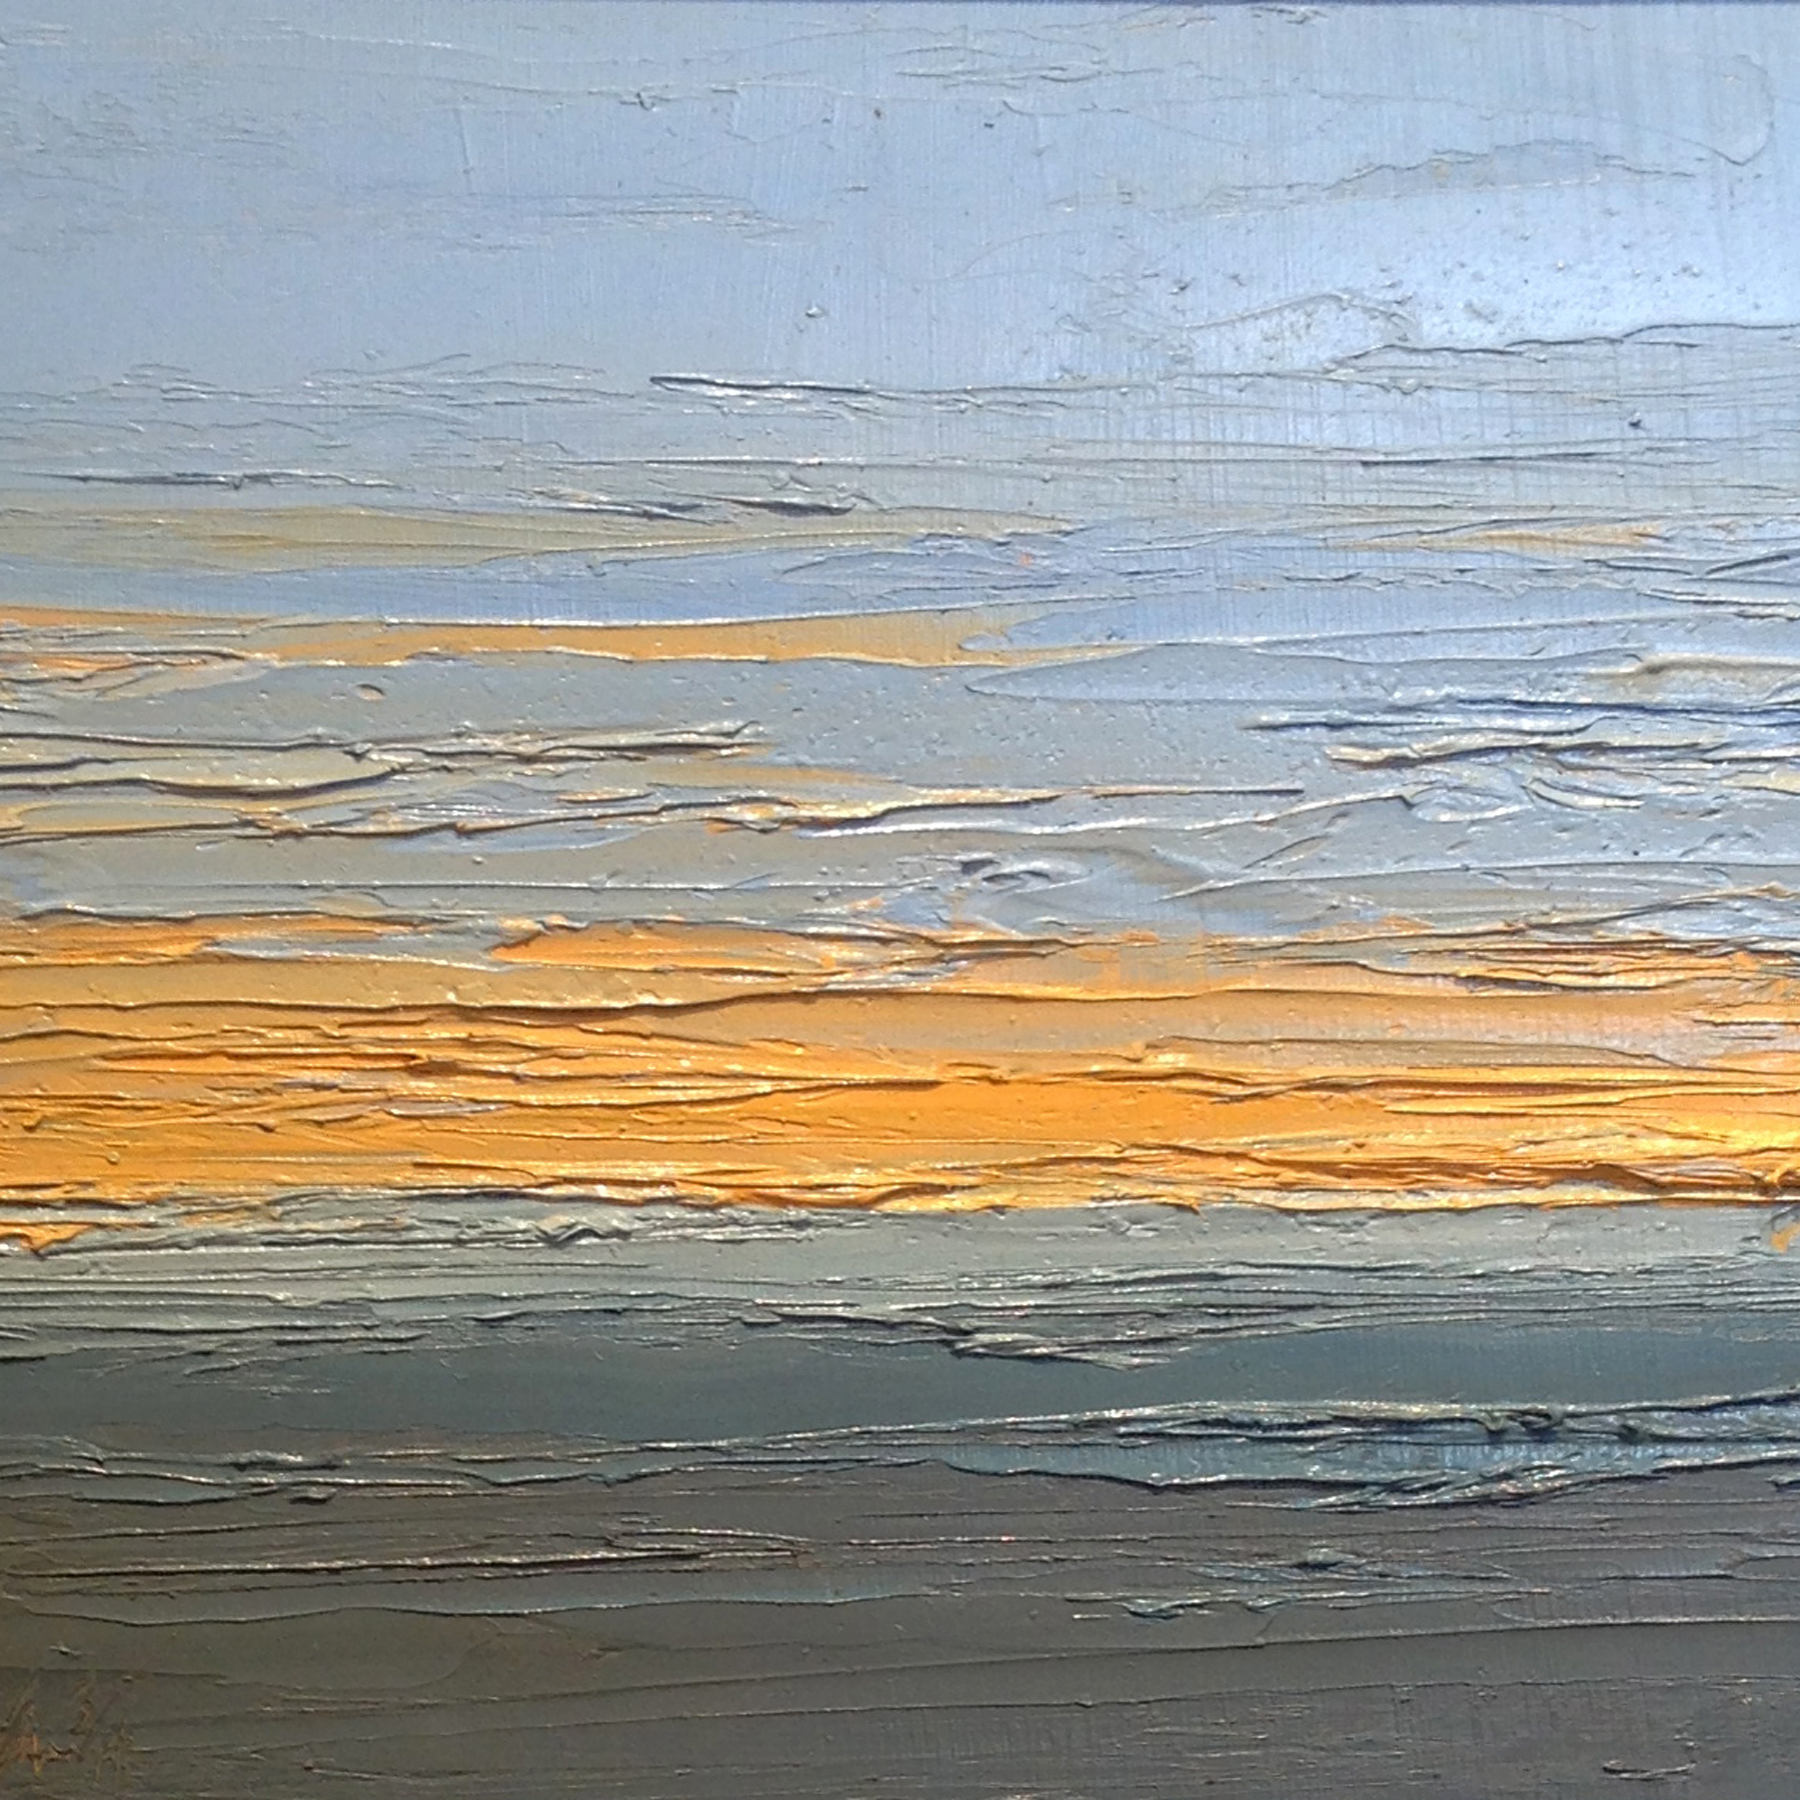 At The Horizon Study 3-5-2014, oil on board, 8 by 8 inches, 2014 - $750